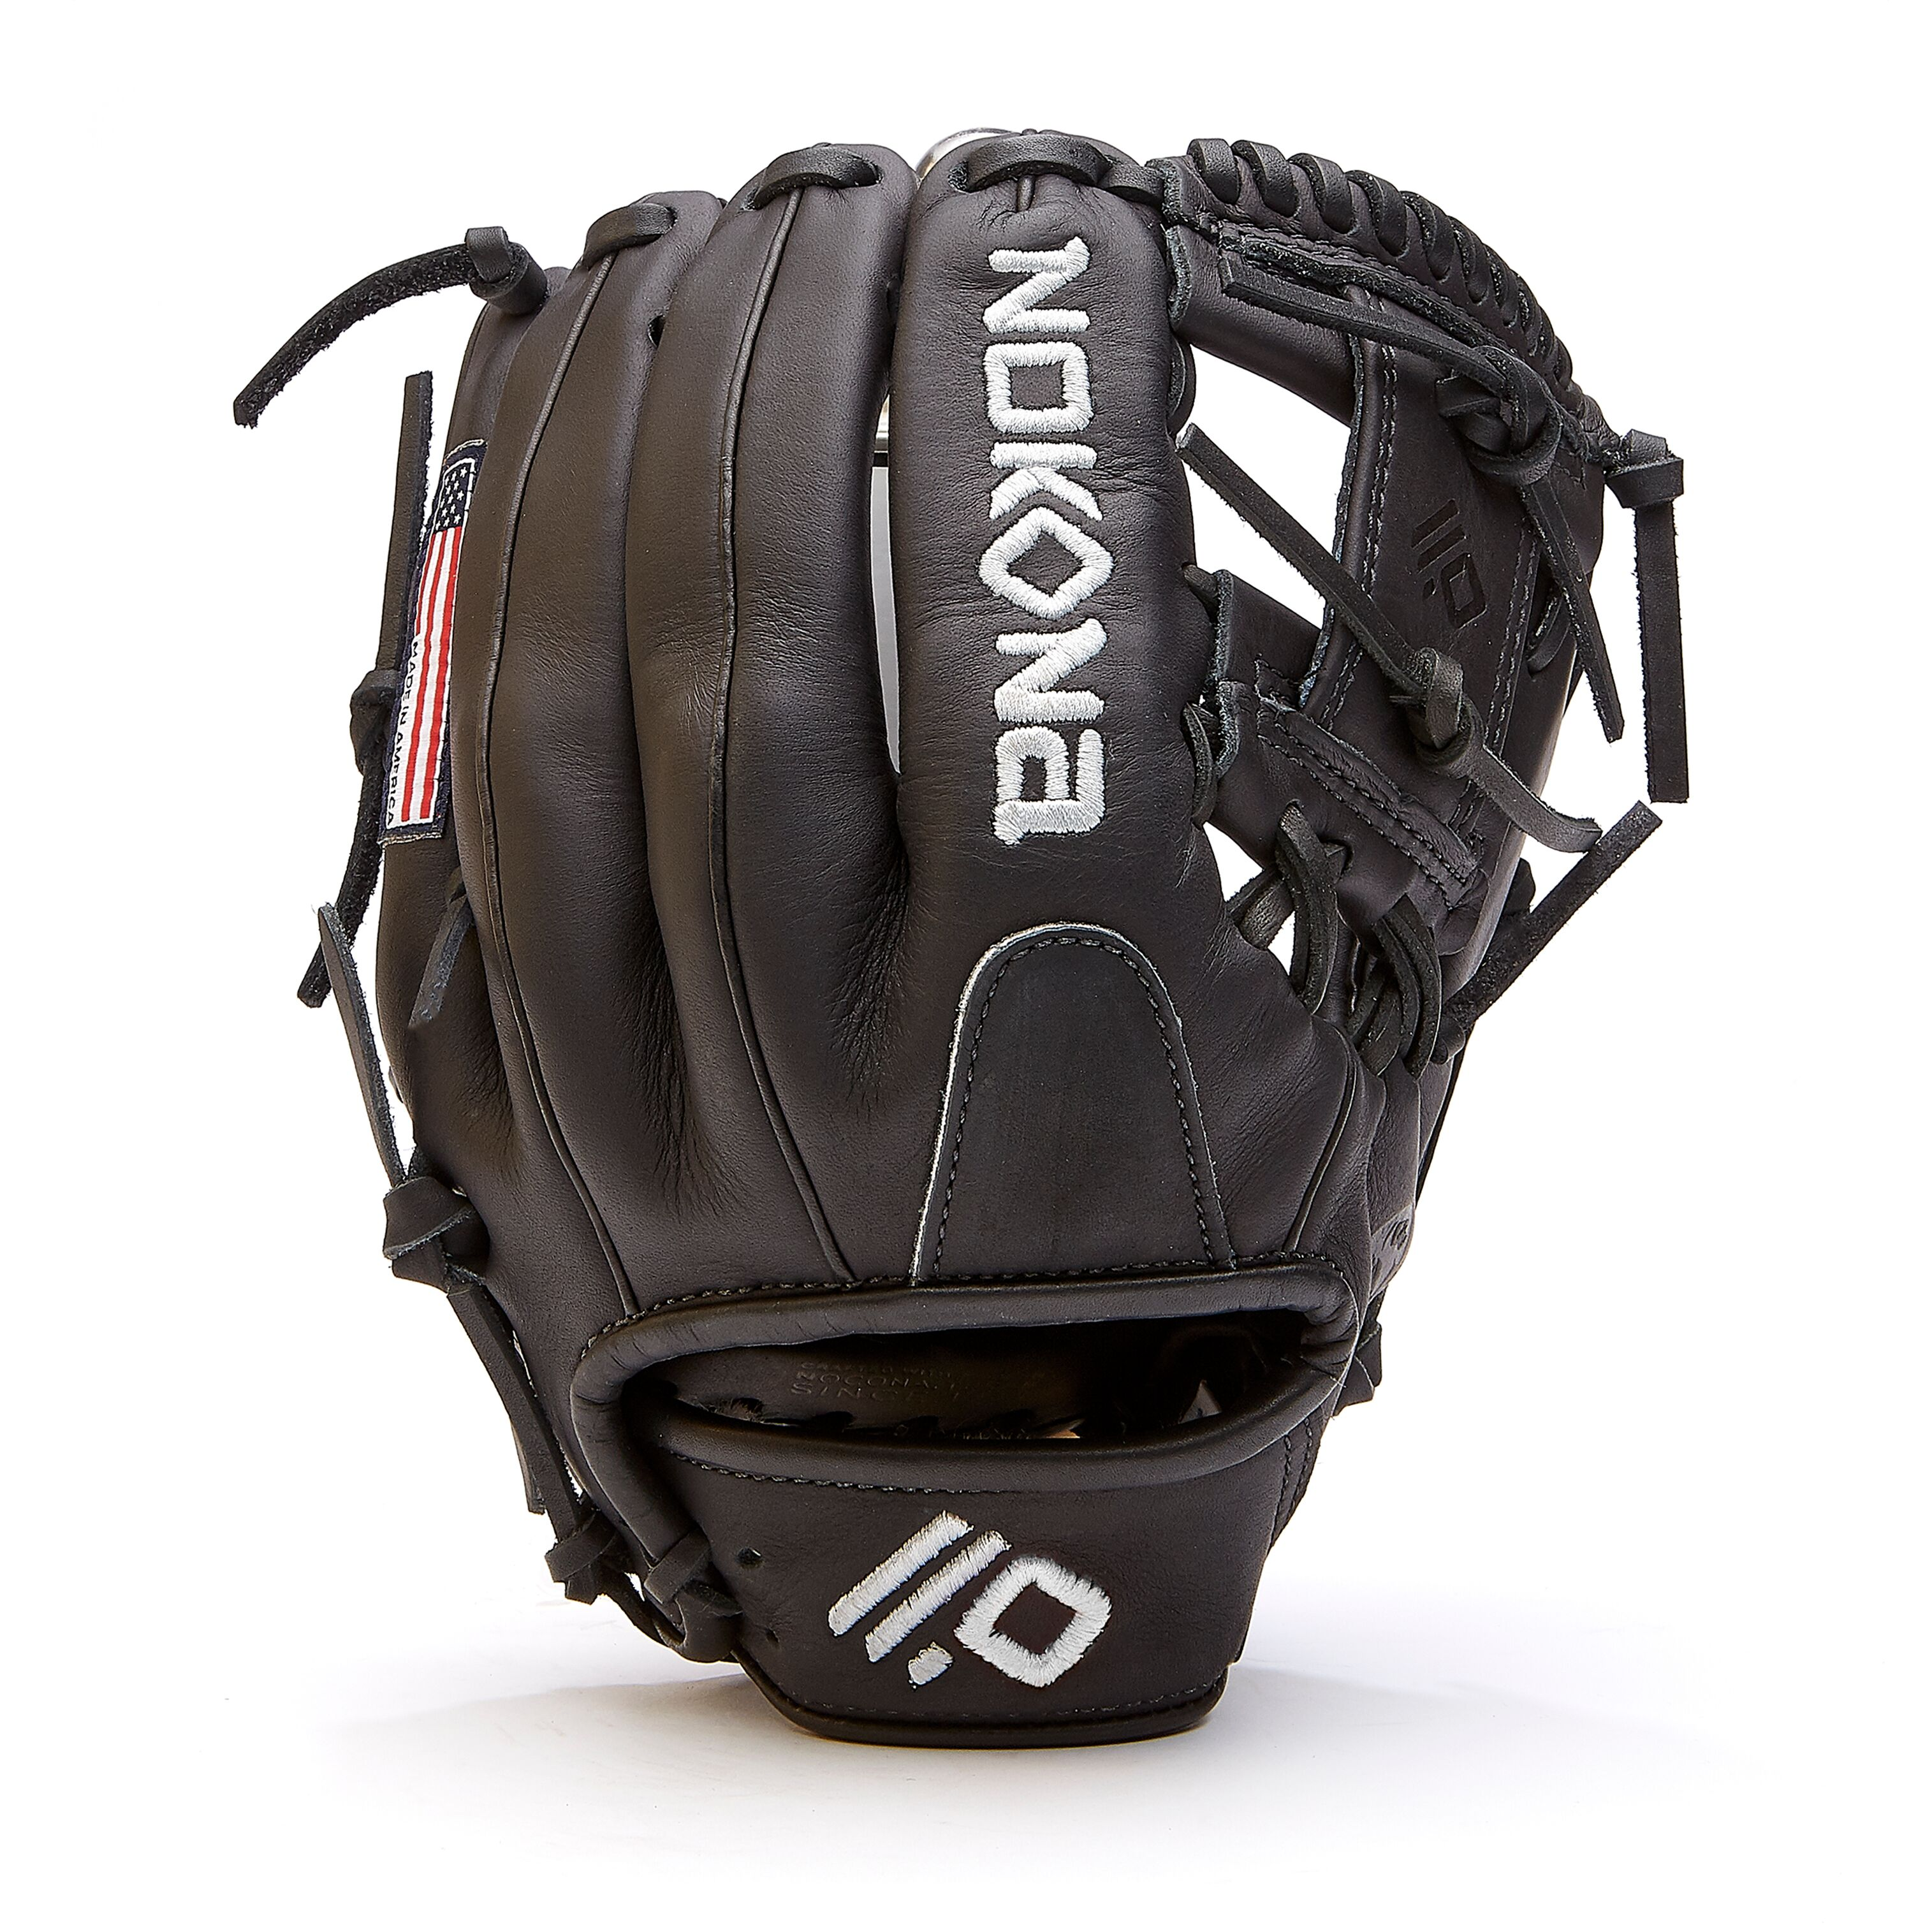 nokona-black-americankip-14u-baseball-glove-11-25-right-hand-throw A-200I-BK-RightHandThrow  808808894186 <span>The American Kip series made with the finest American steer hide